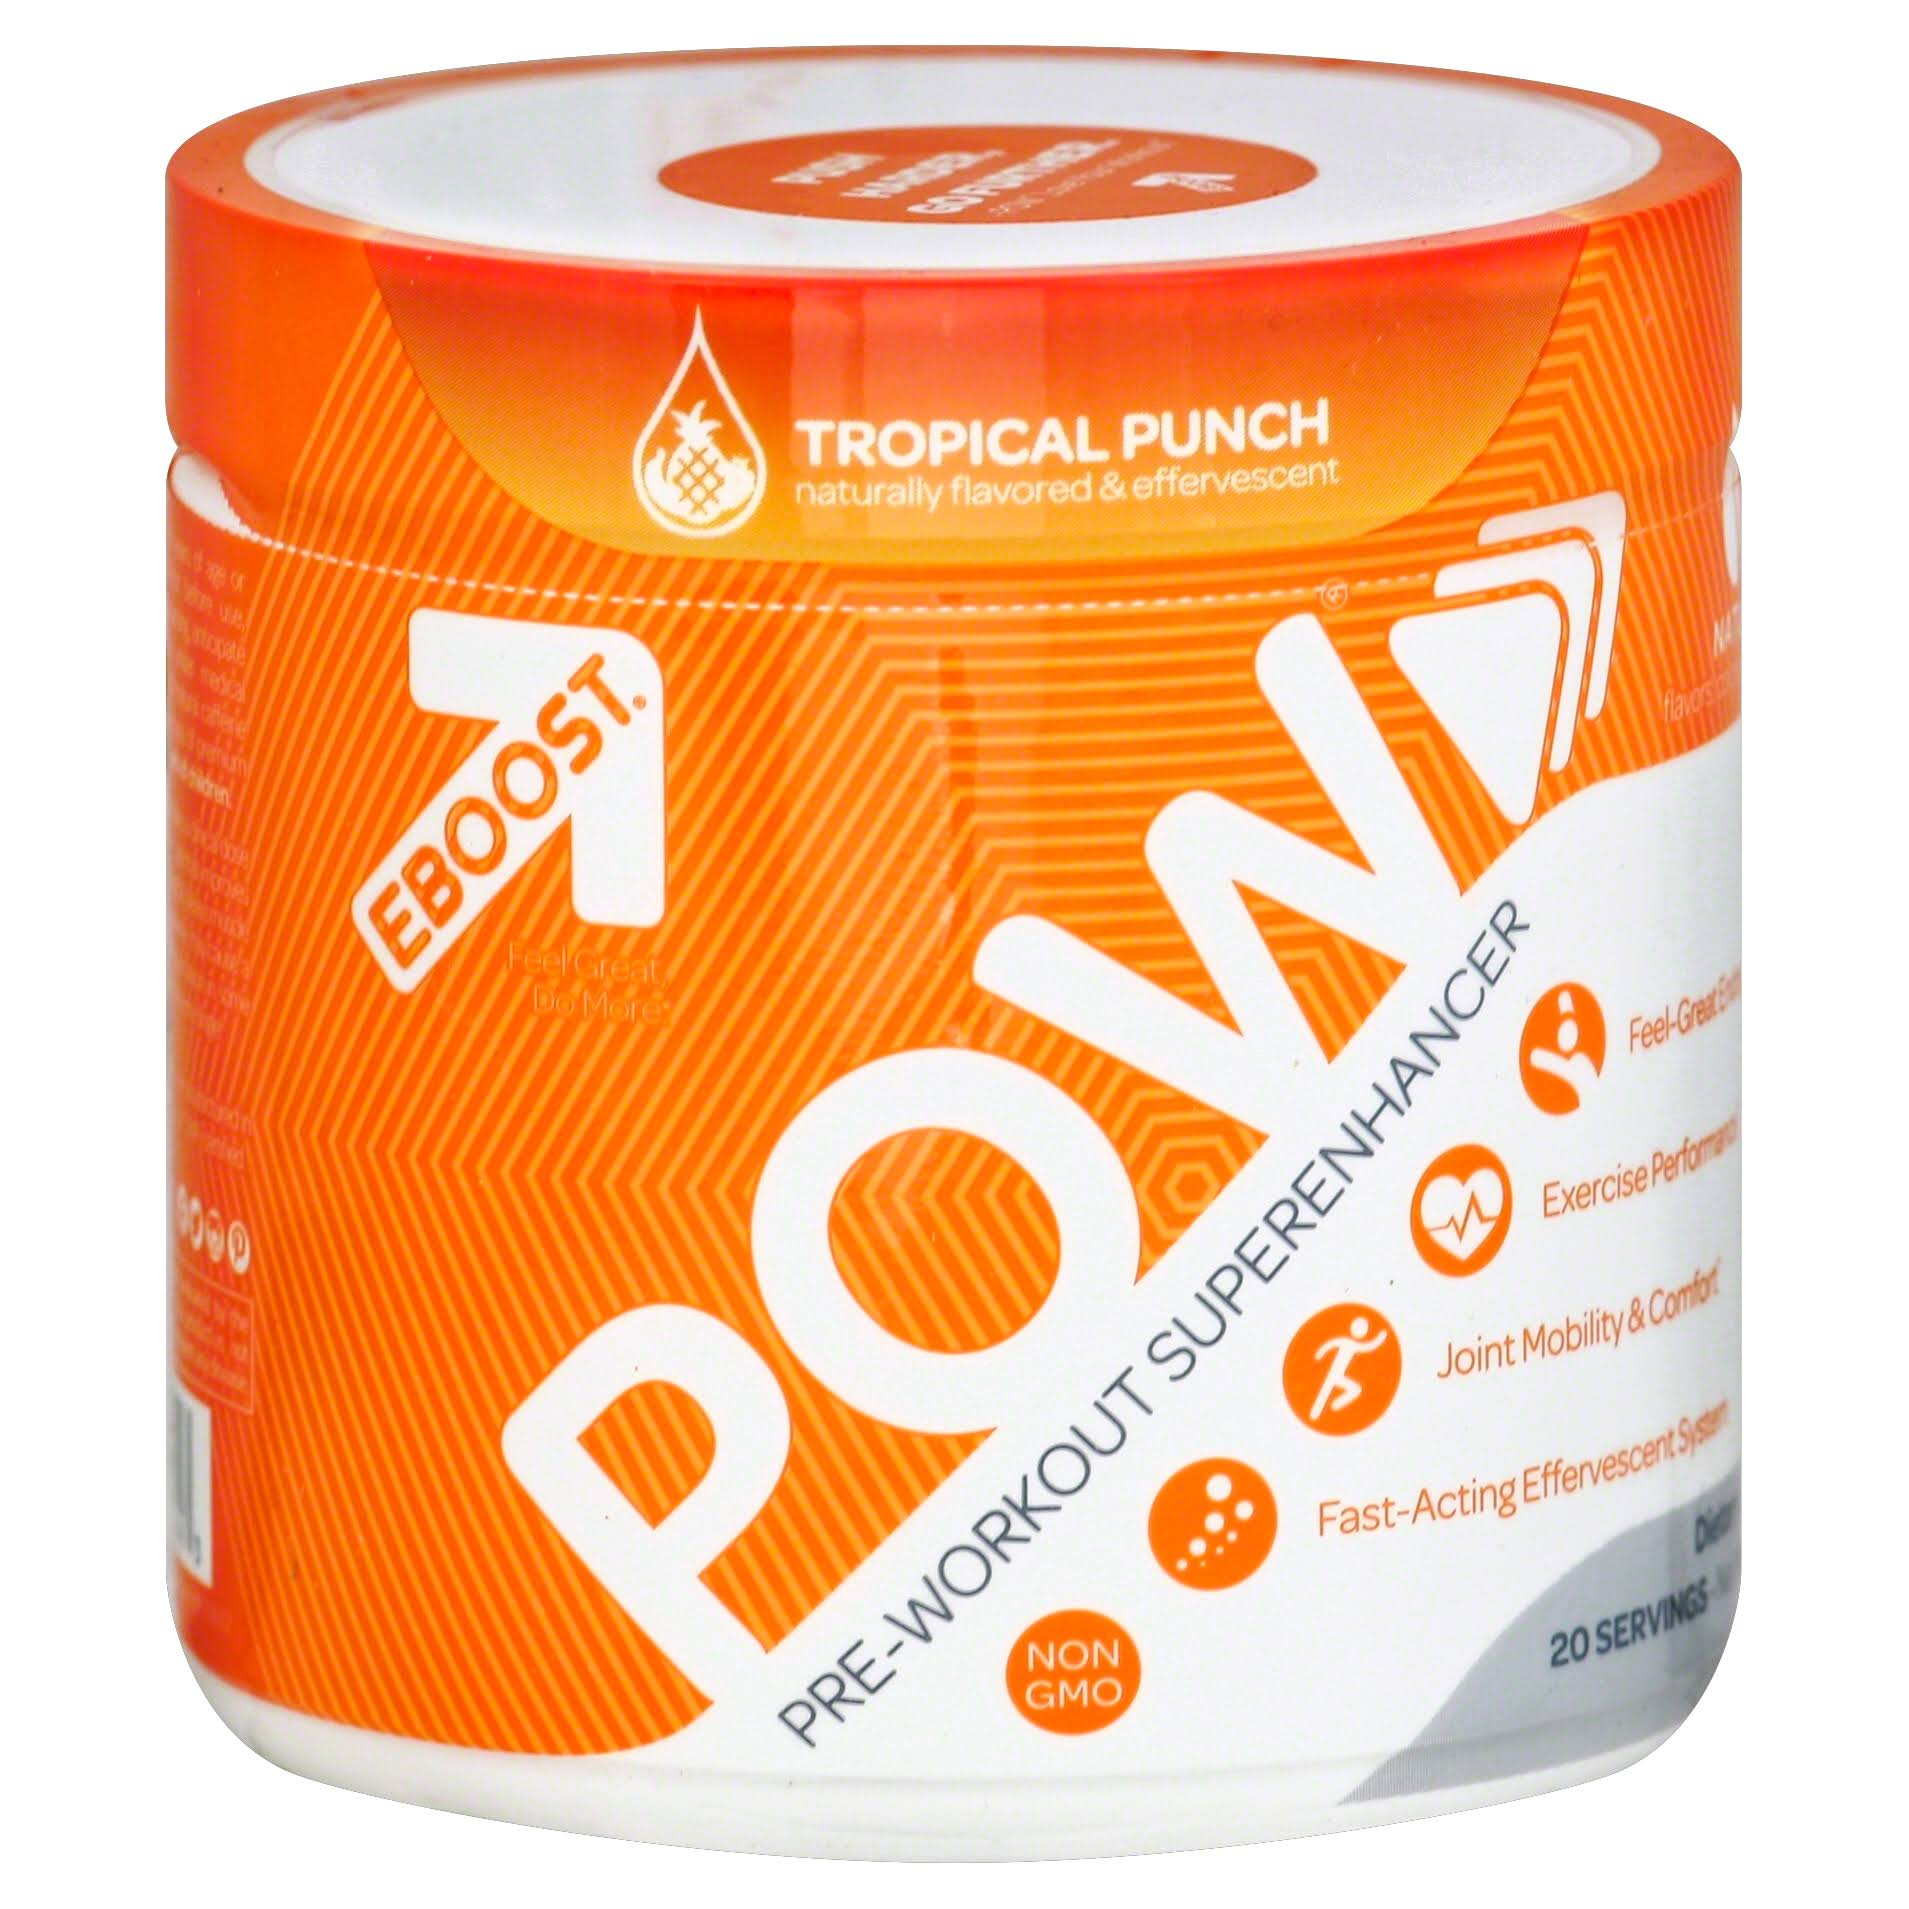 Eboost Pow Pre-workout Powder Supplement - Tropical Punch, 20 Servings